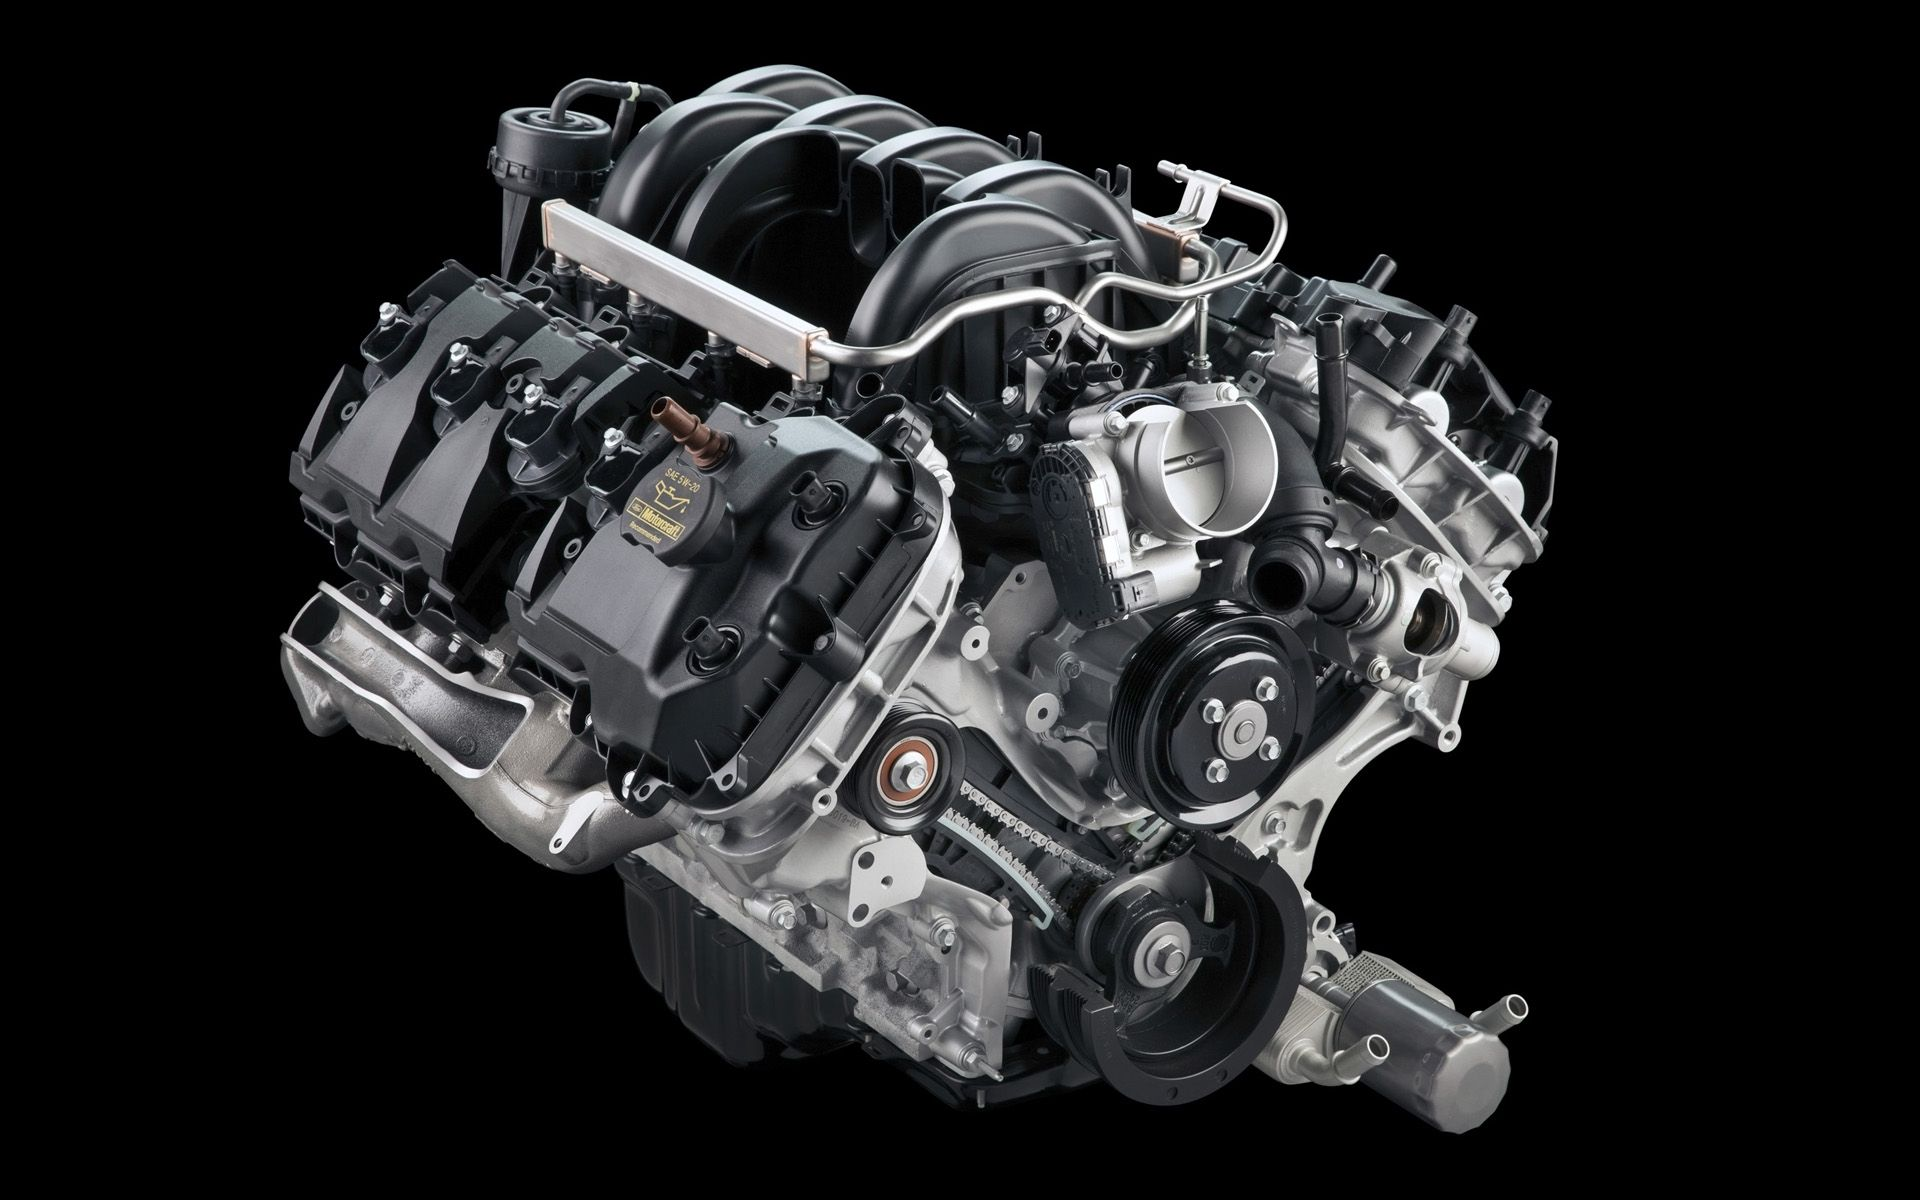 V8 Engine 3D Live Wallpaper Android Apps on Google Play